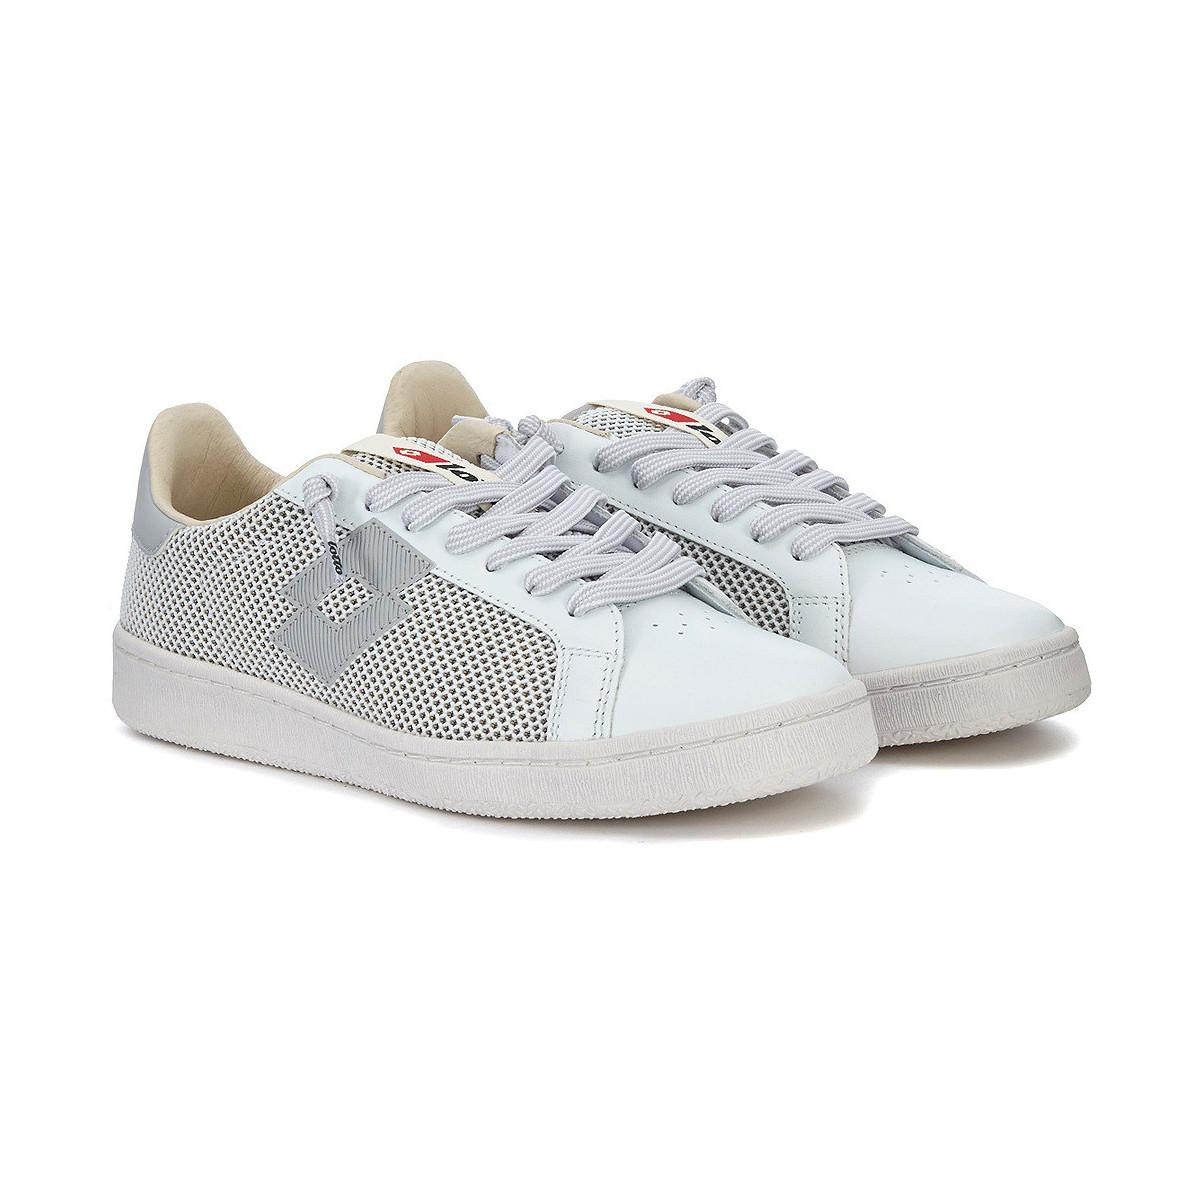 Lotto - Leggenda Autograph White And Grey Leather And Mesh Sneaker Men s  Shoes (trainers). View fullscreen f5ad4c16d07